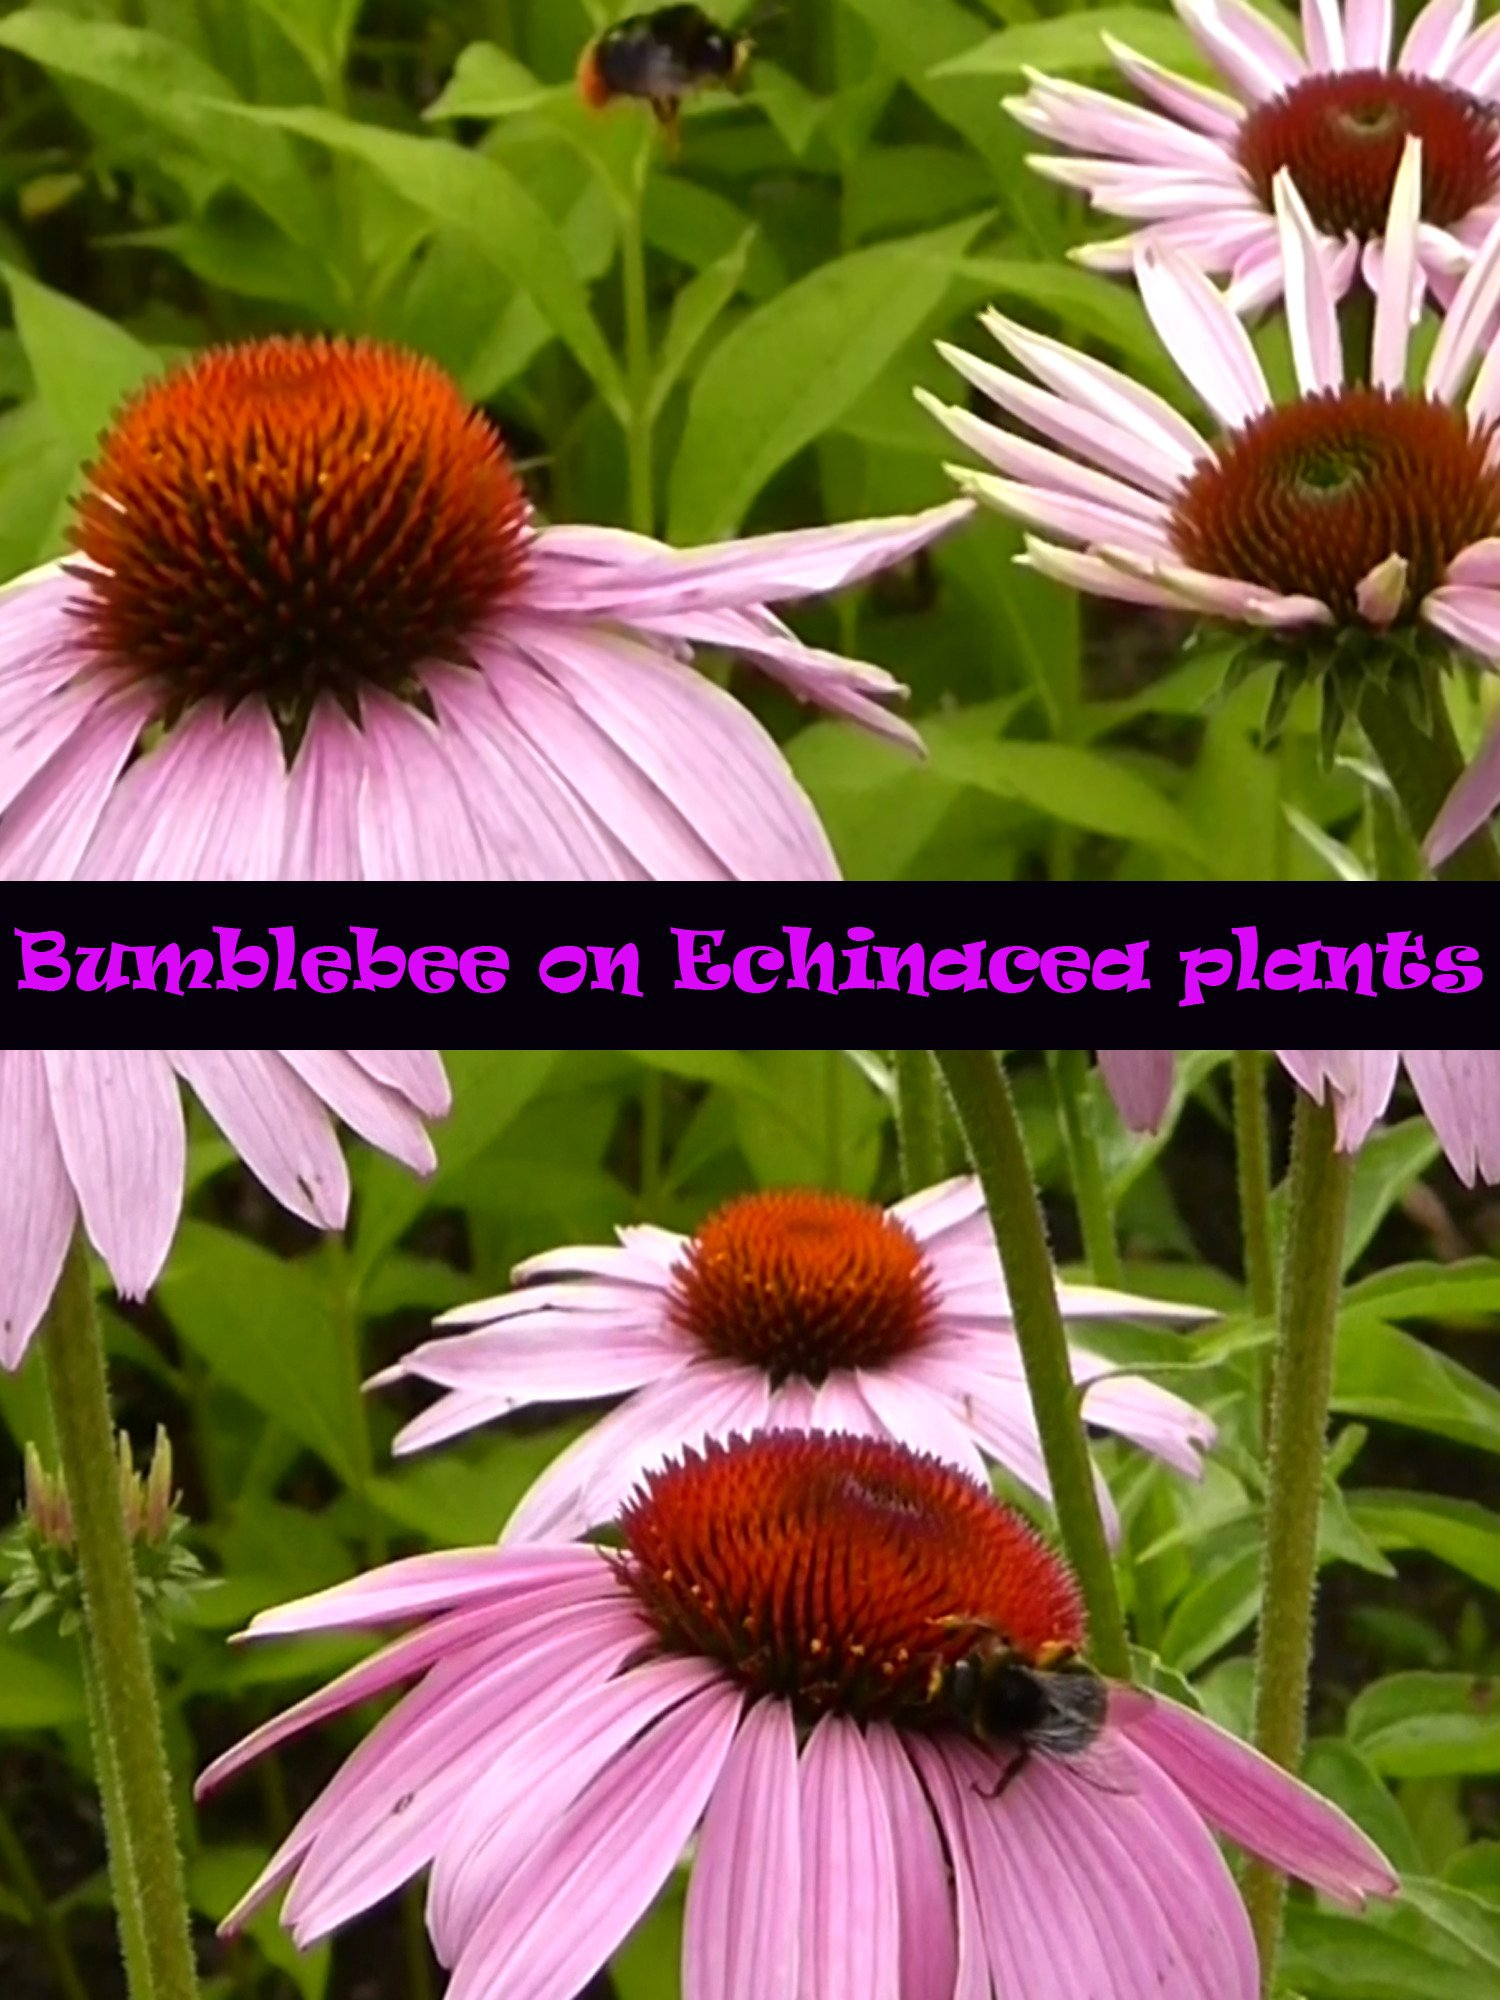 Clip: Bumblebee on Echinacea plants